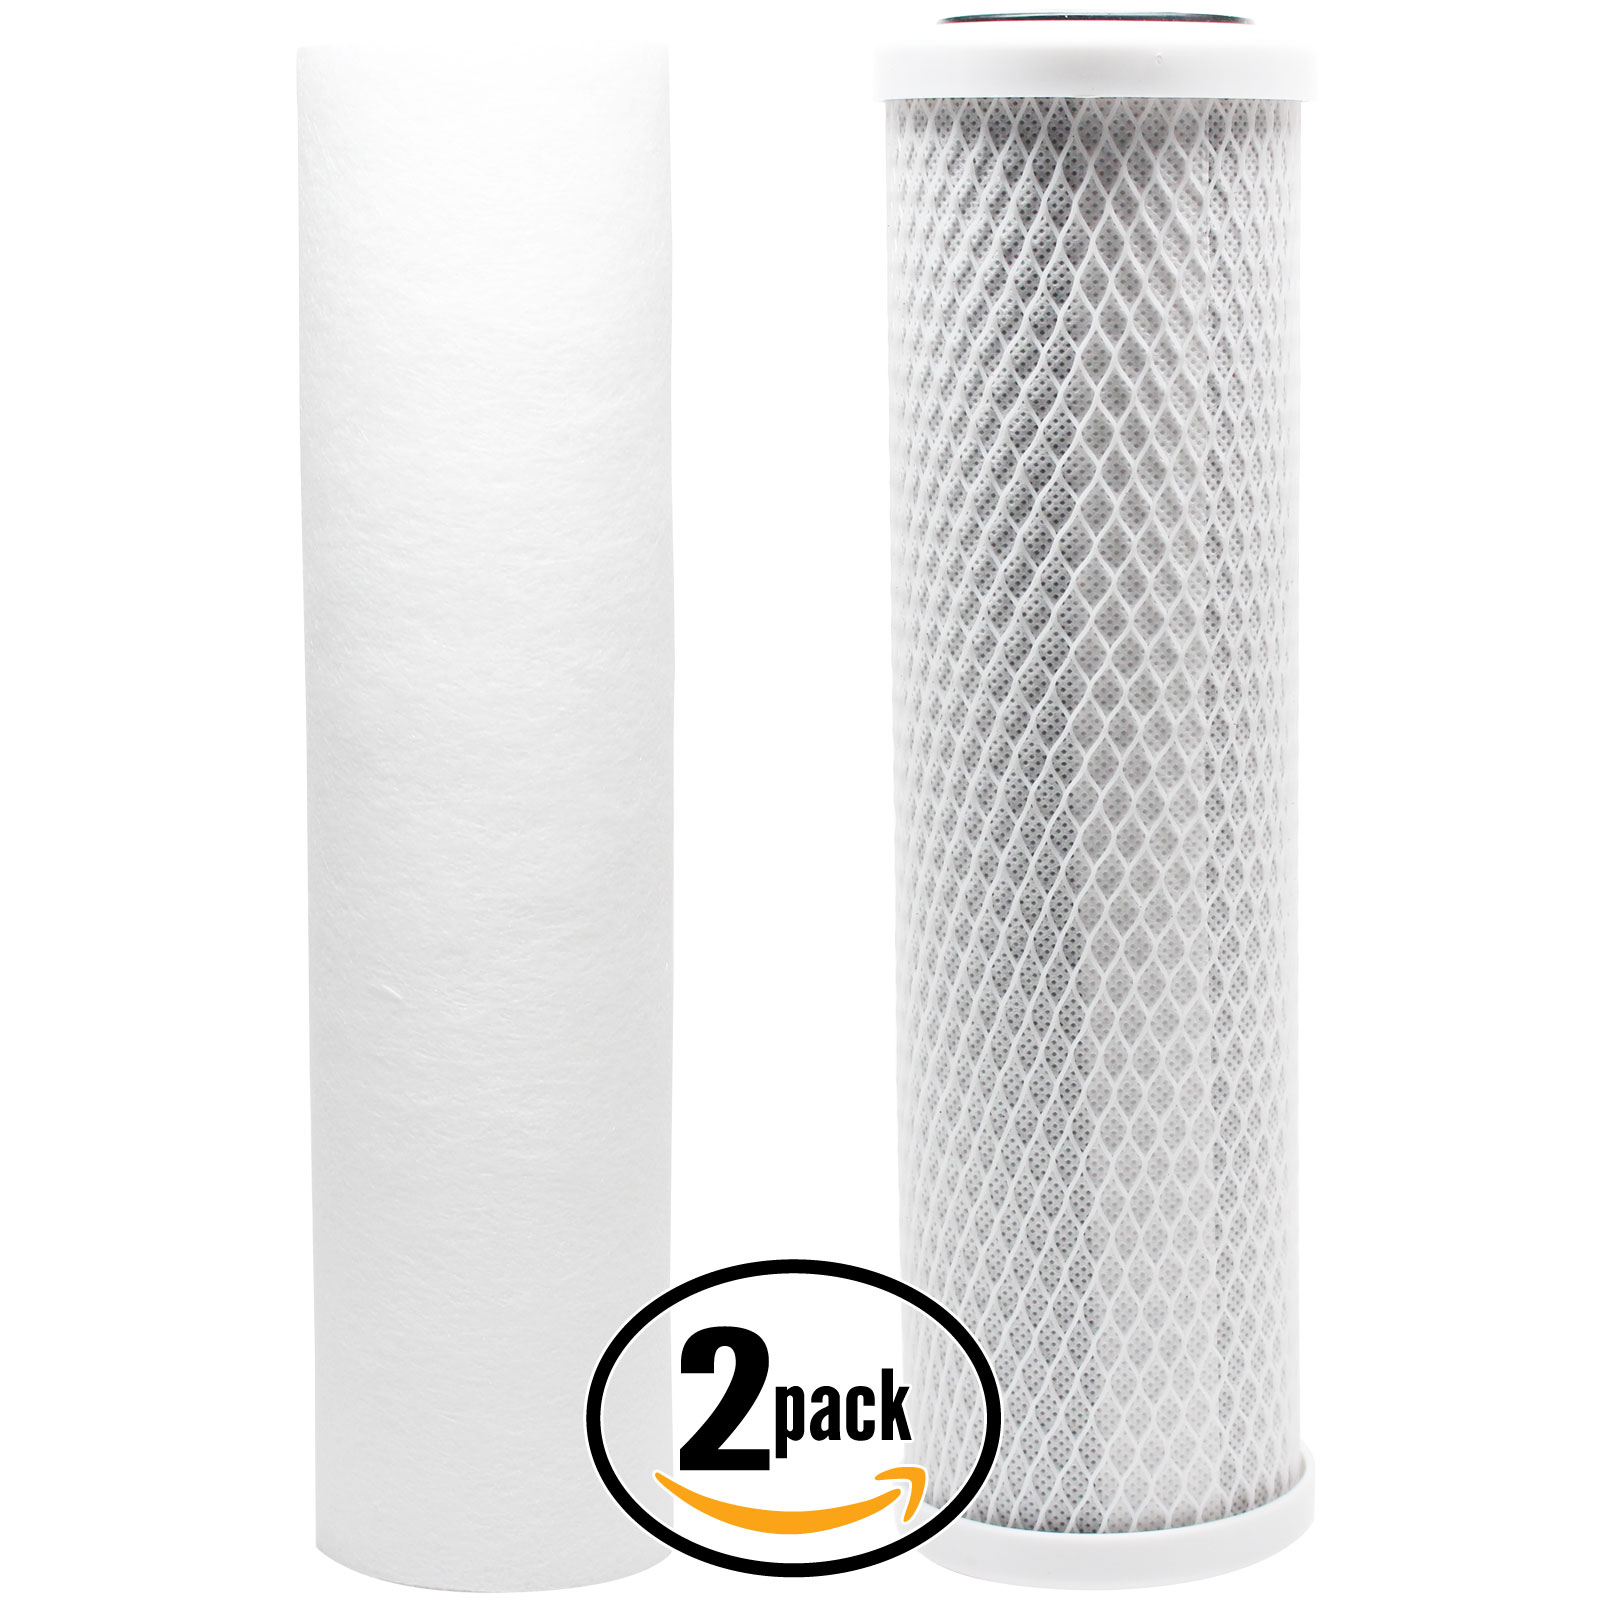 2-Pack Replacement Filter Kit for Glacier Bay HDGUSS4 RO System - Includes Carbon Block Filter & PP Sediment Filter - Denali Pure Brand